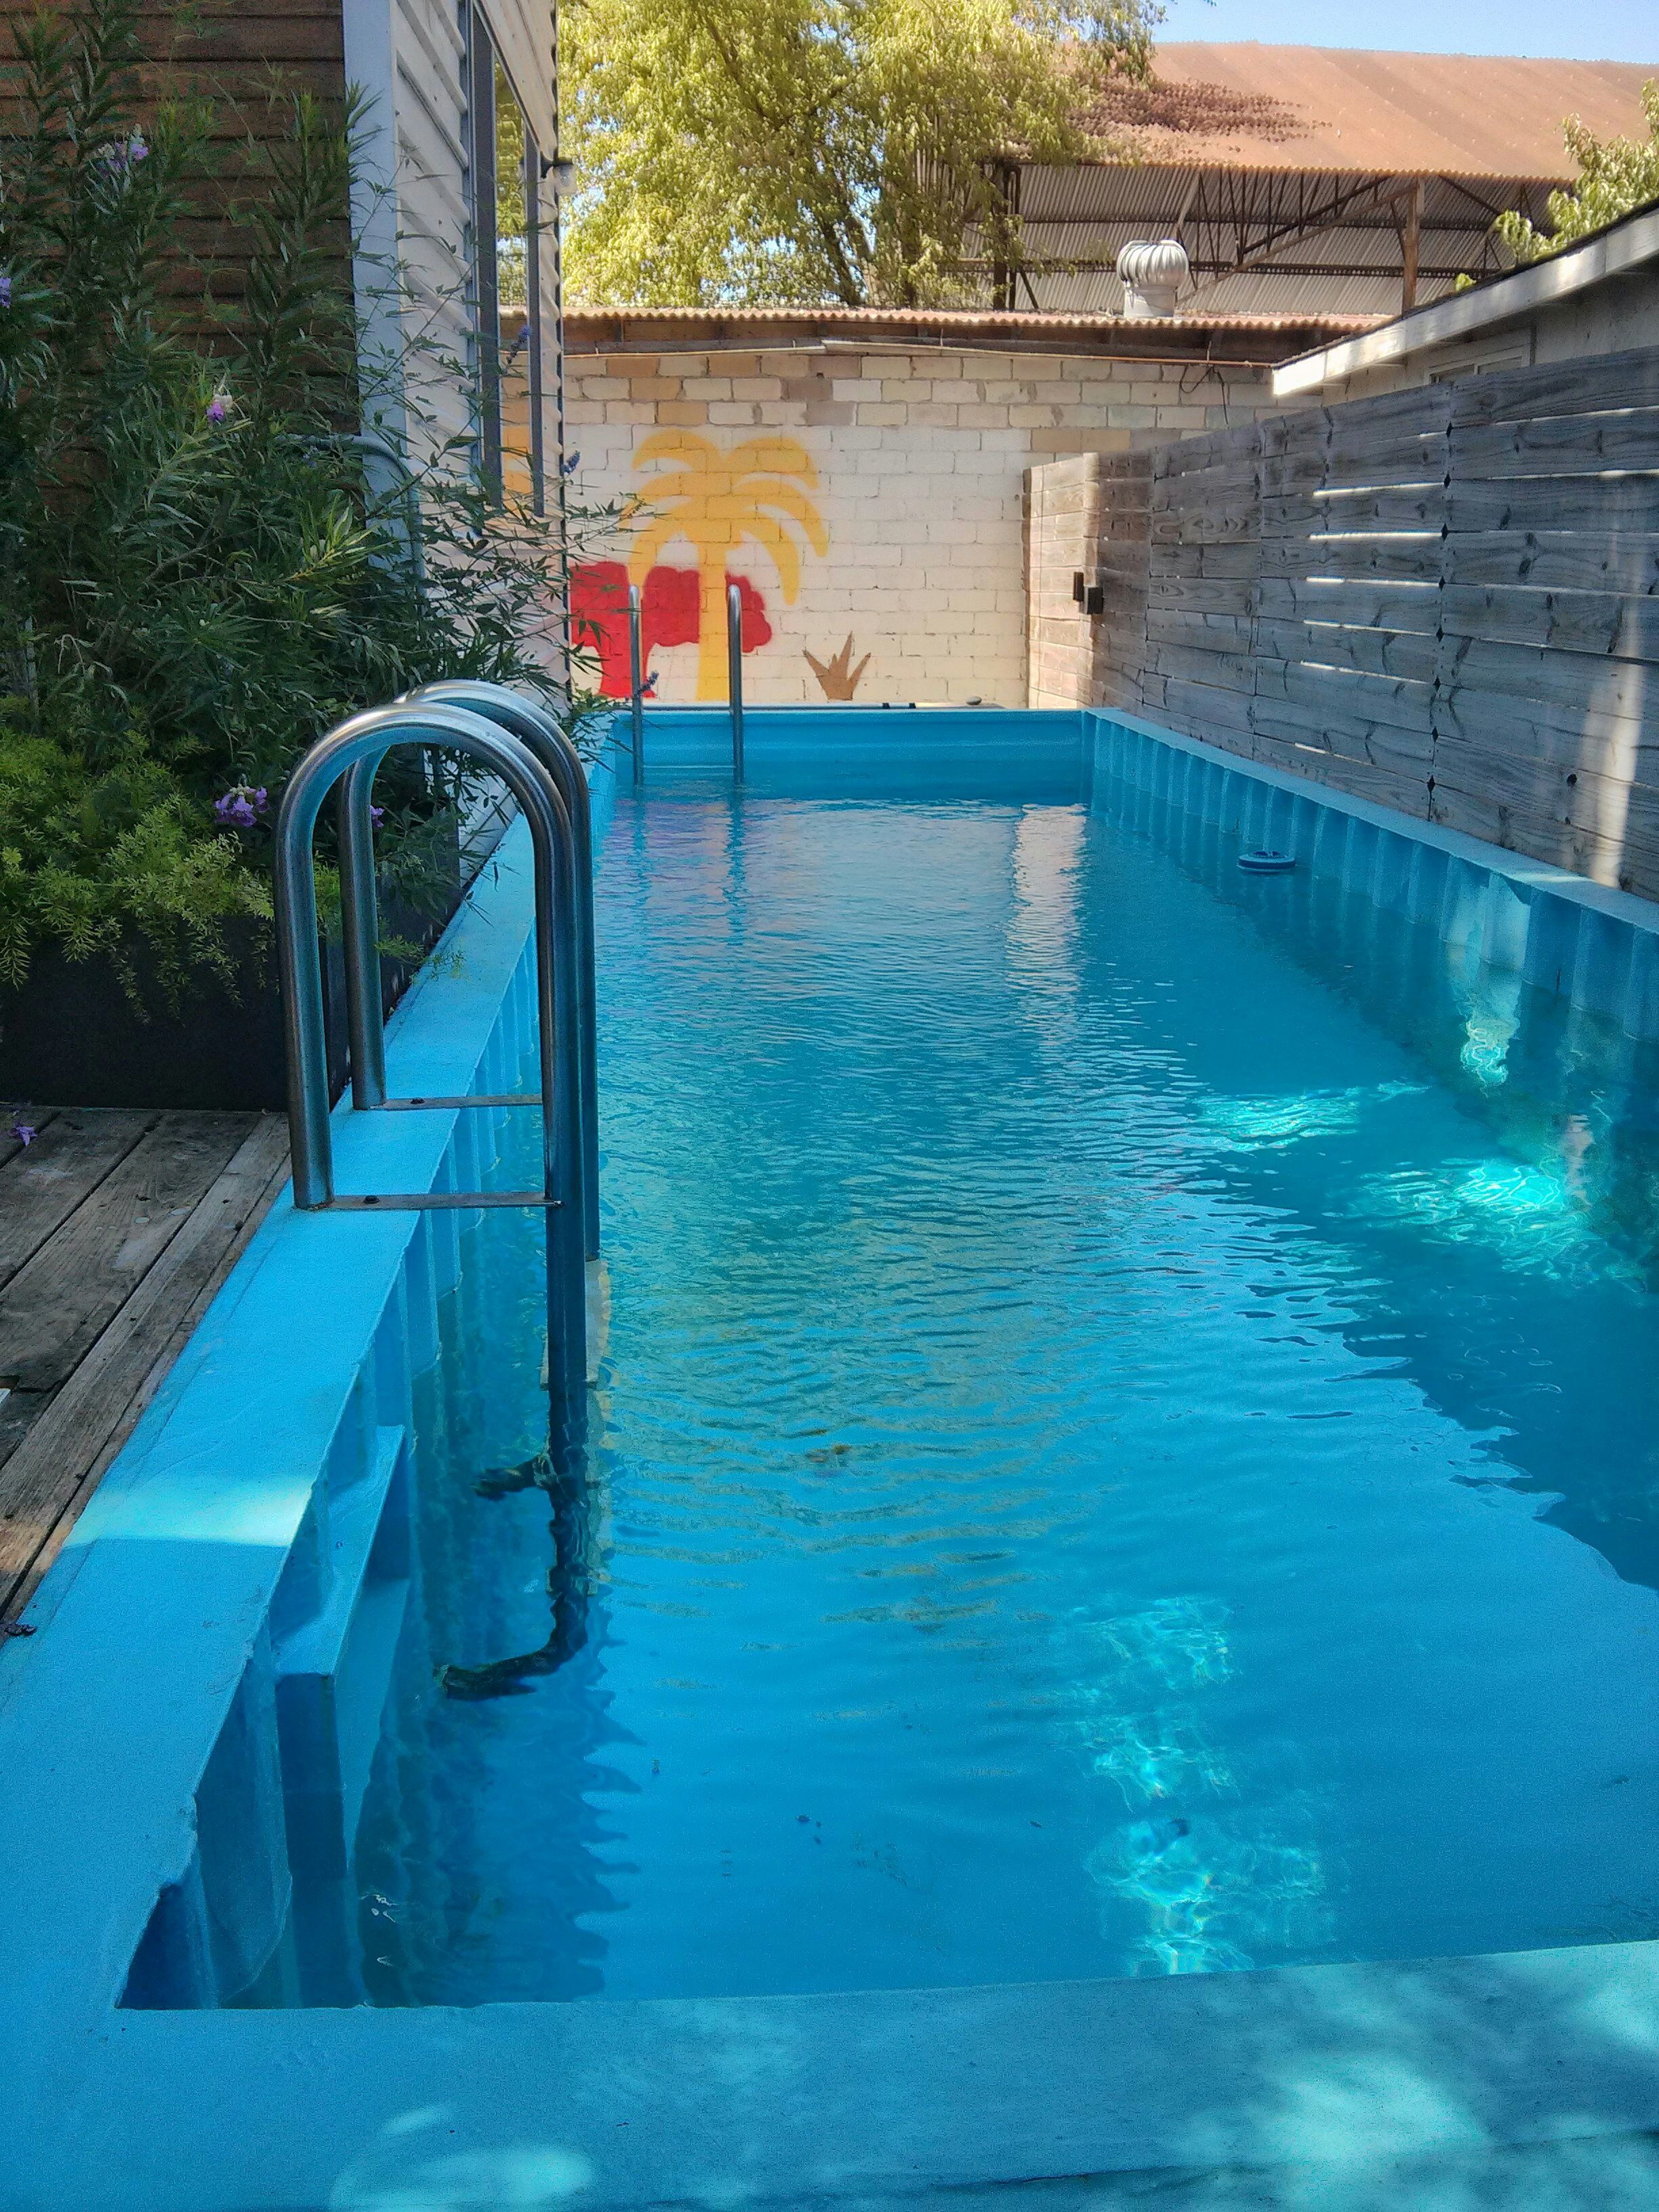 Shipping container pool 7 years out piscinas casas - Piscina container ...